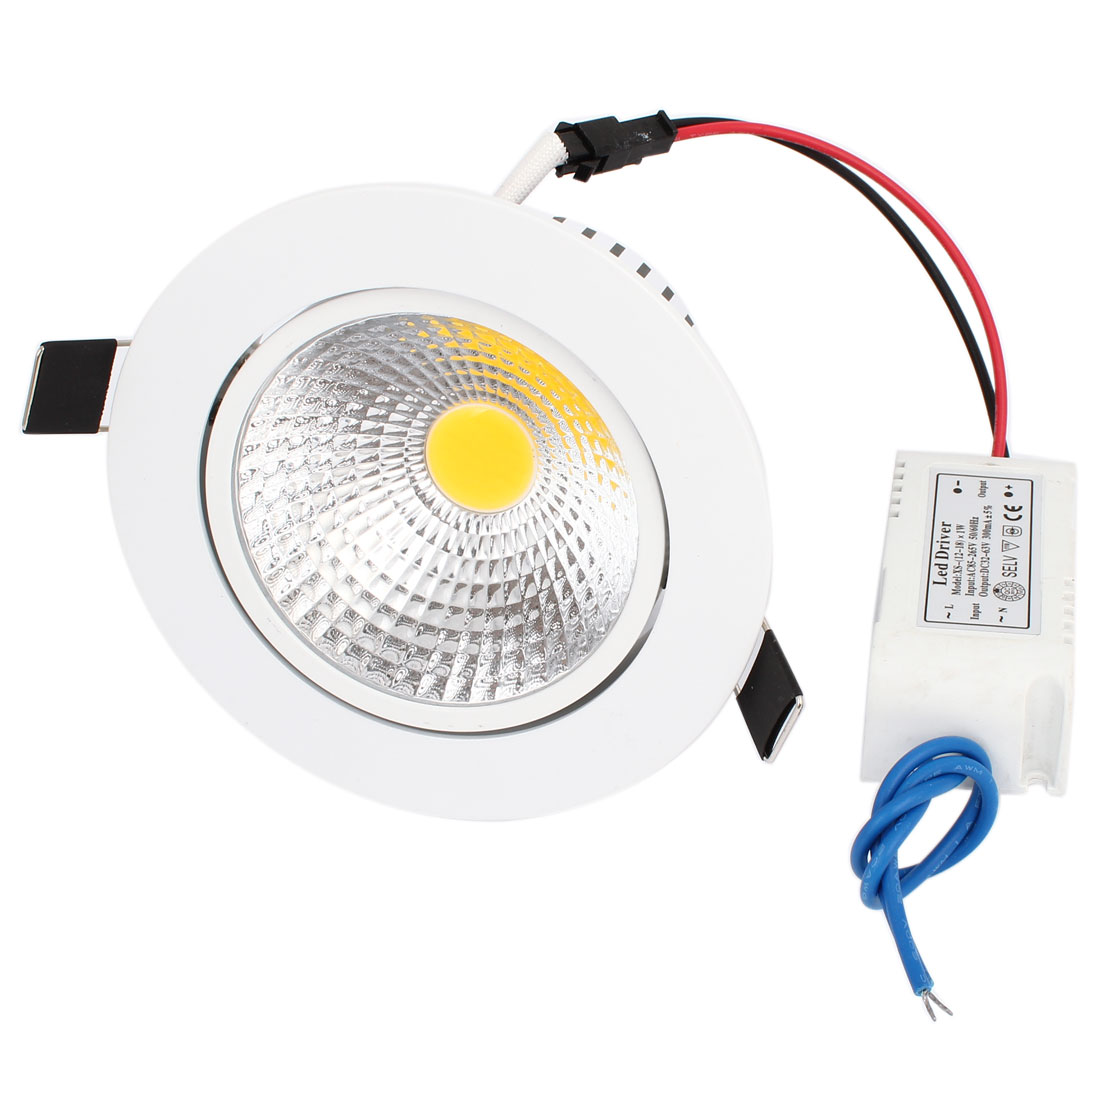 120LM 15W COB LED Recessed Ceiling Downlight Warm White Energy Saving Bulb